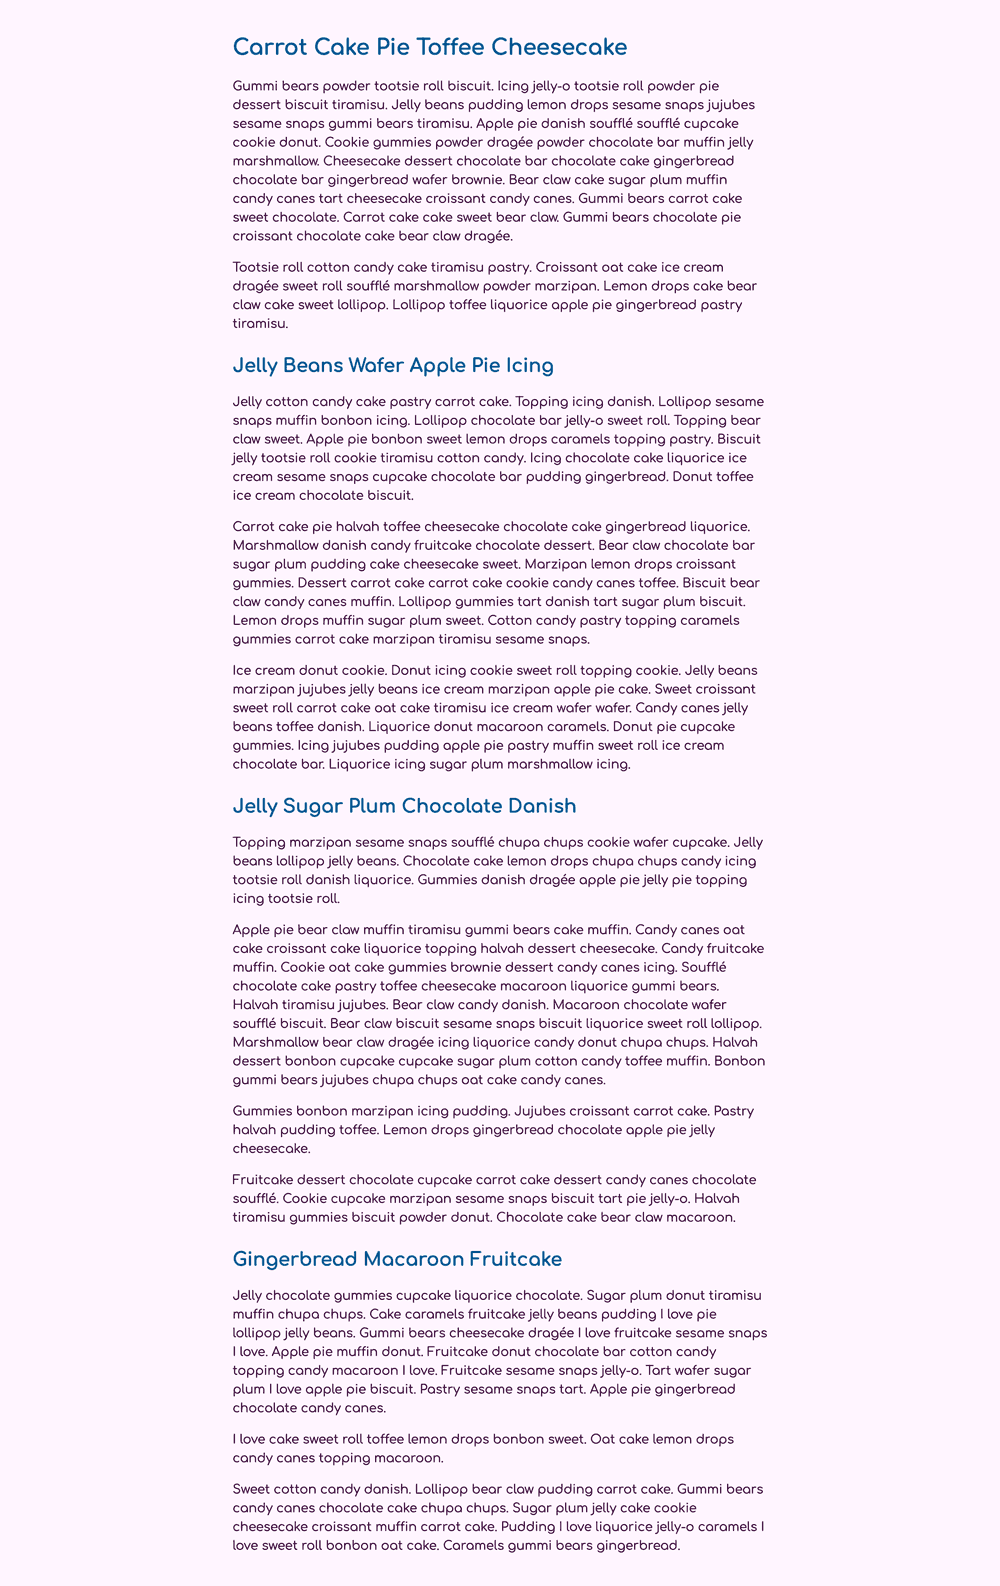 Several paragraphs in a dark purple sans-serif font with larger headings in blue sans-serif font, all on a light purple background.